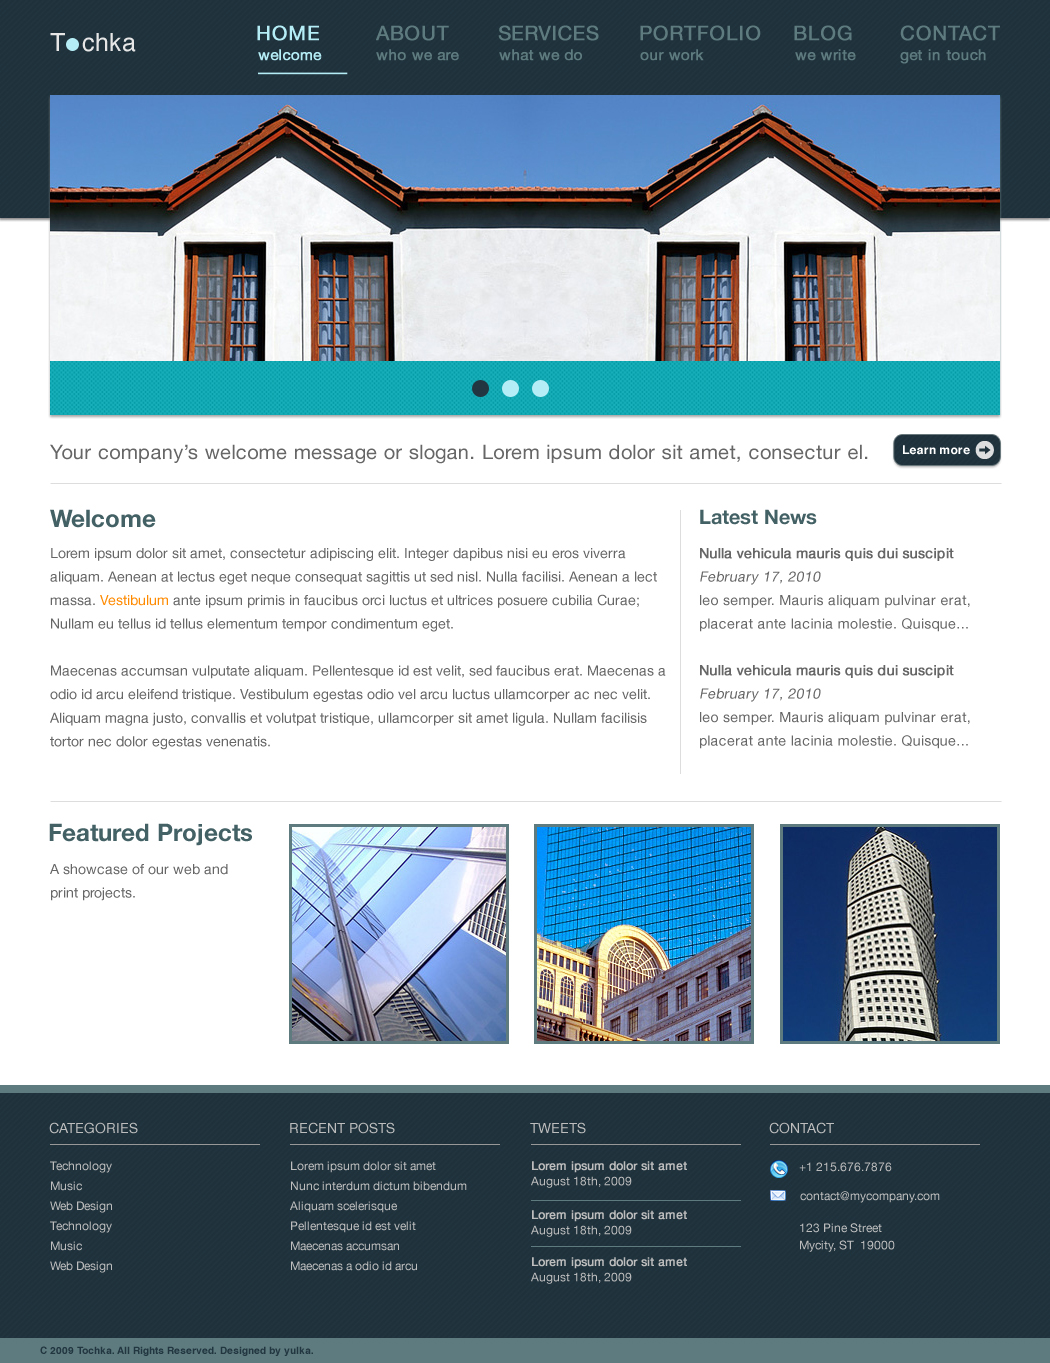 Tochka Business, Portfolio and Blog Template - Tochka HTML CSS Theme :: Homepage  A screenshot of the Homepage featuring jQuery image slider and fade in / fade out effect for the featured projects' images.